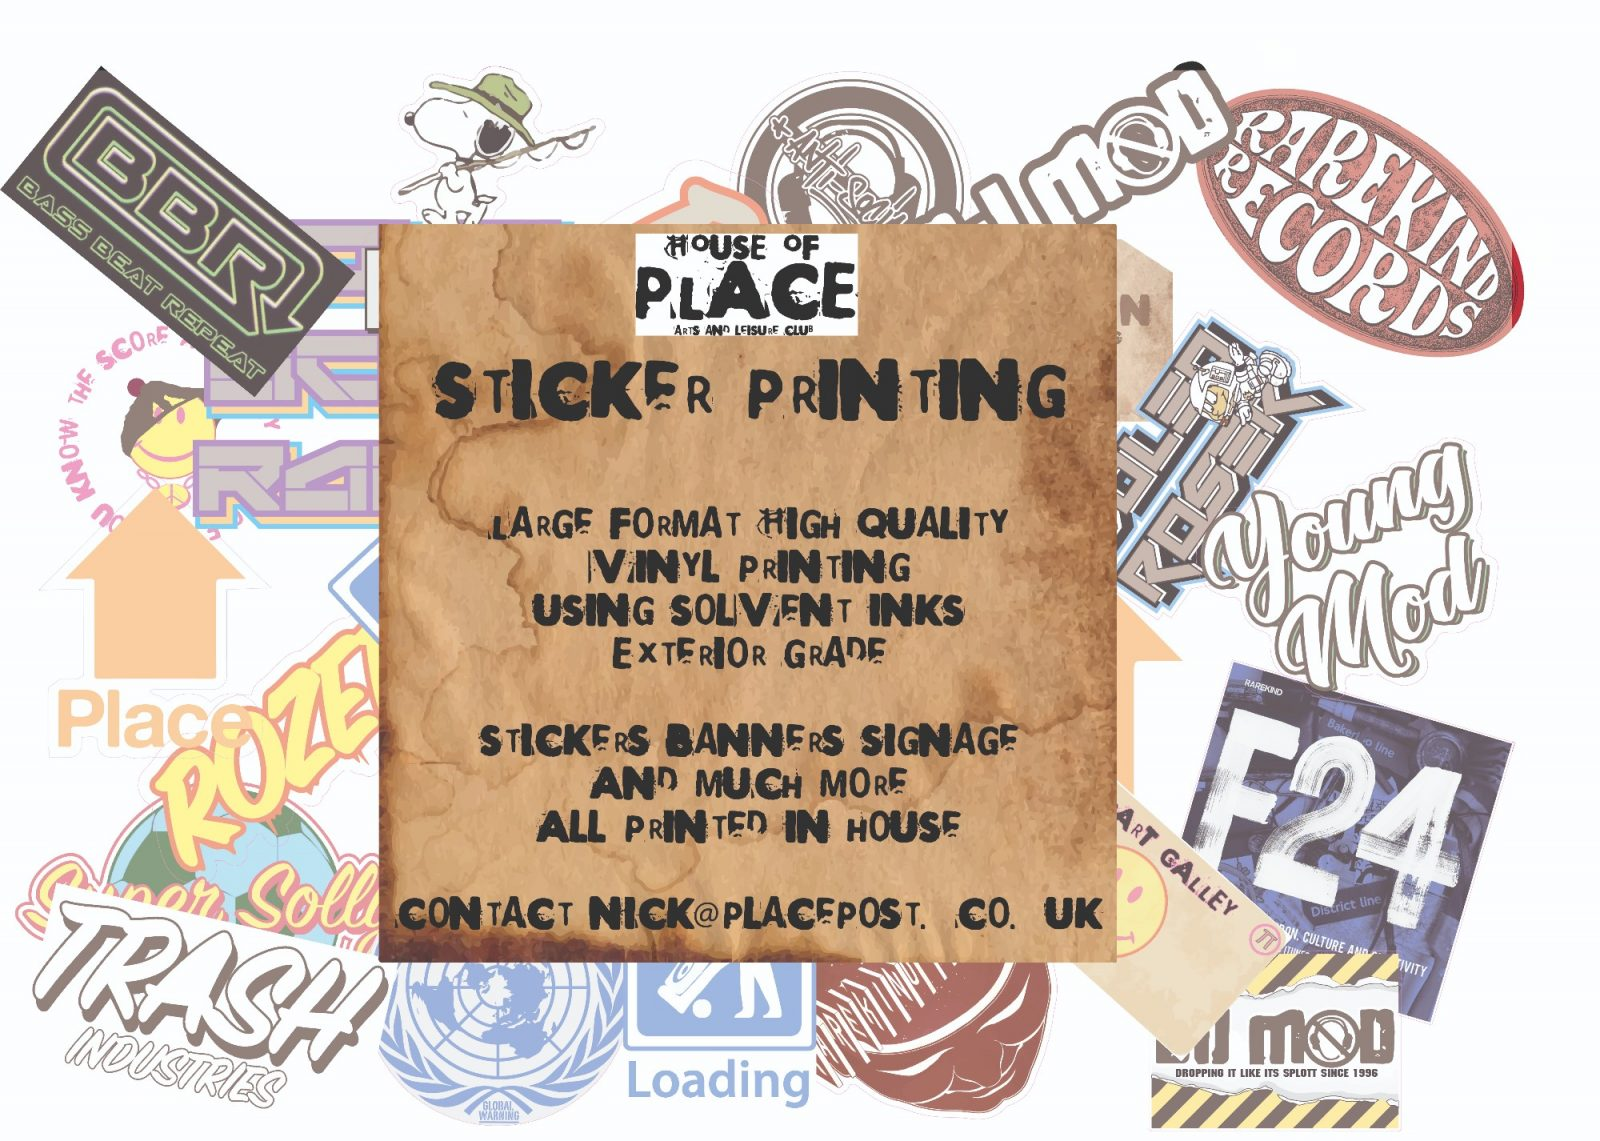 houseofplace.com printing vinyl Stickers - Solvent printing - Custome stickers